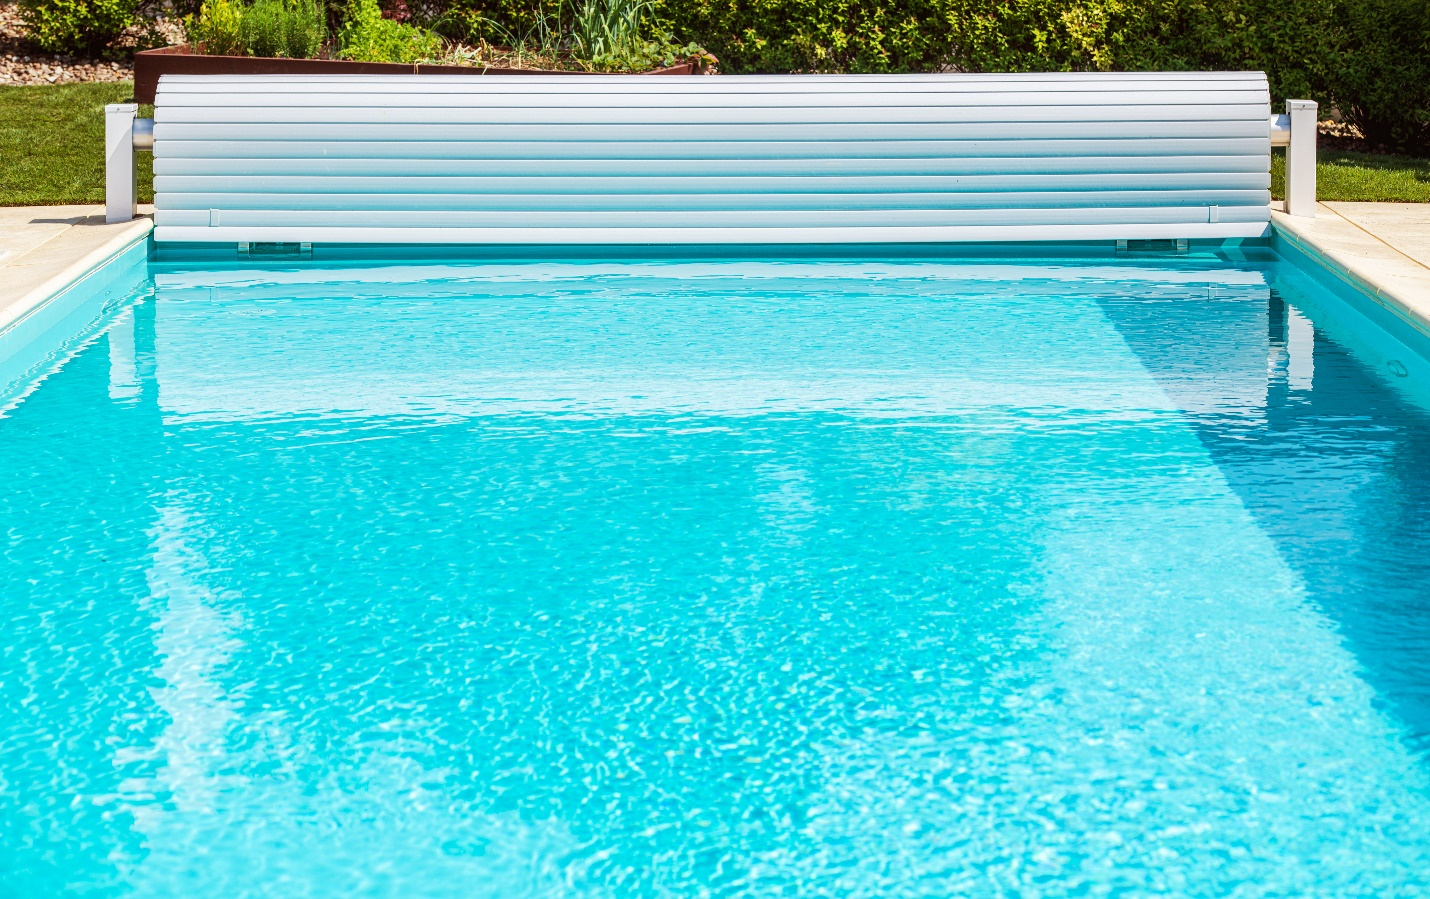 5 Advantages of Having a Cover for Your Swimming Pool